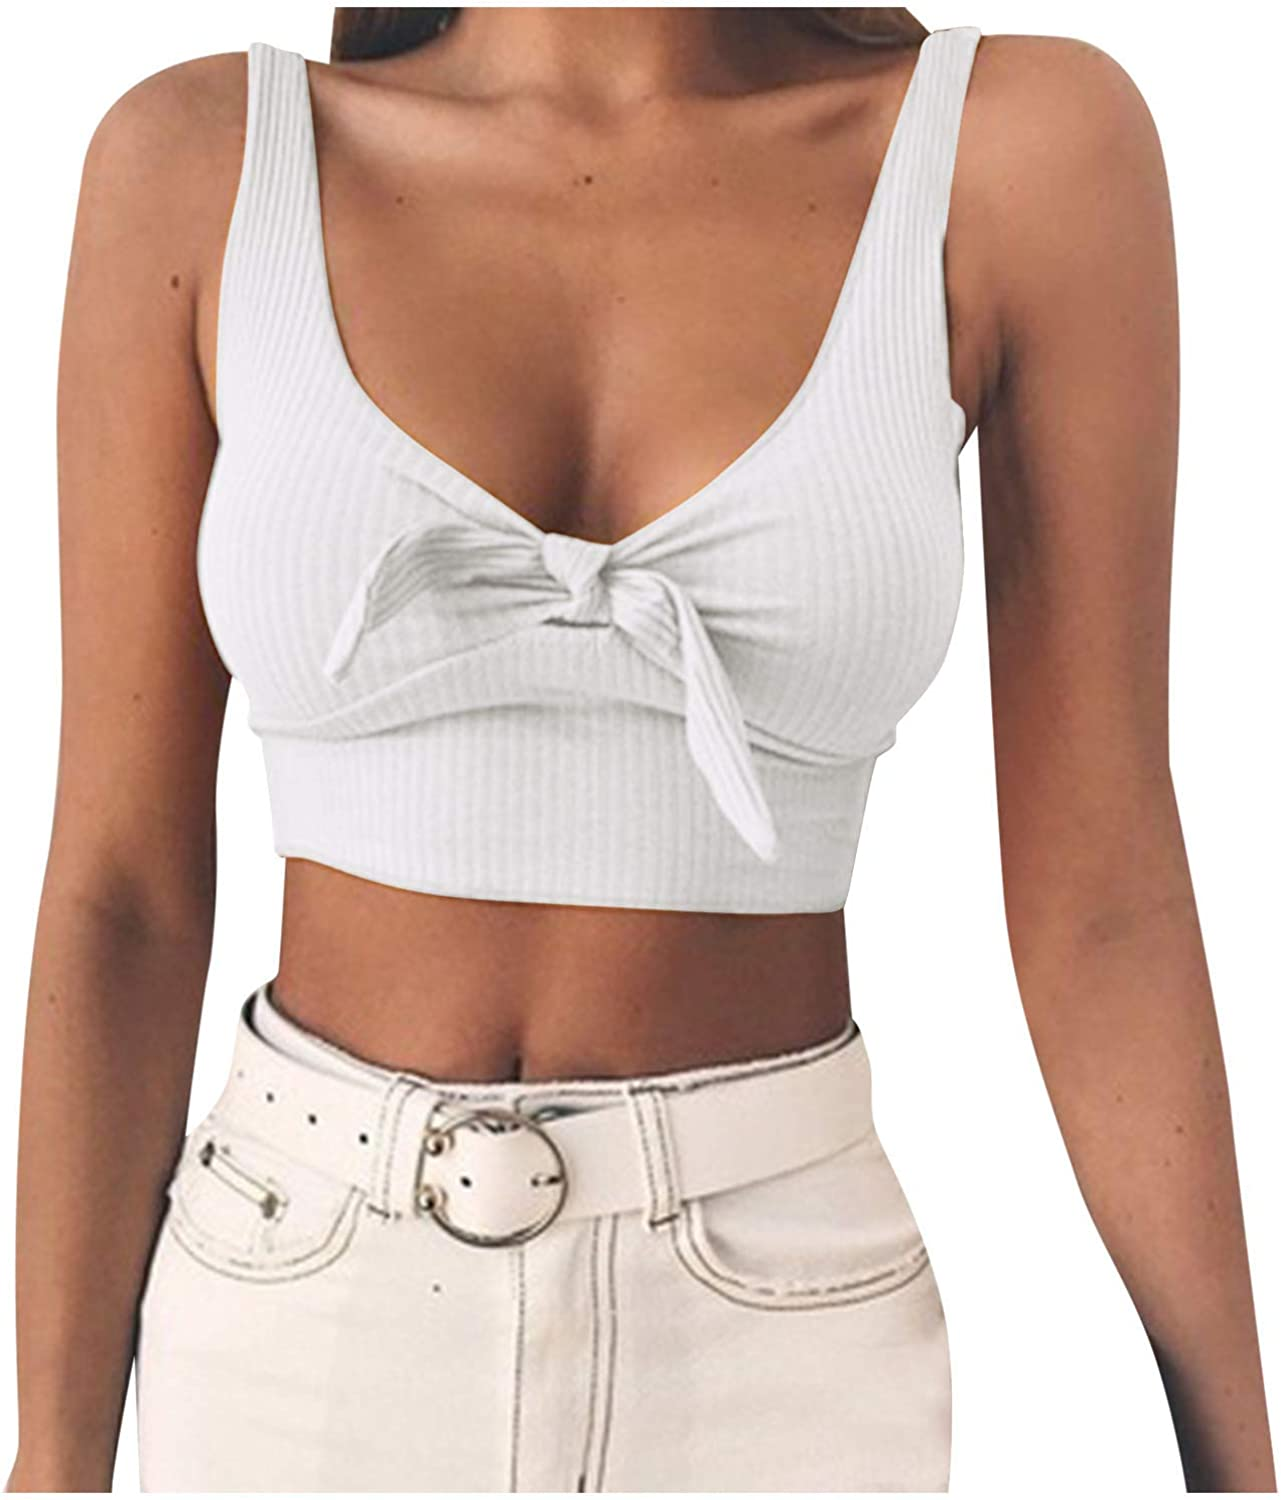 ML_Victor Crop Top for Women Sexy V Neck Crop Tank Tops Slim Fit Camisole Vest Solid Fashion Sleeveless Summer T Shirts